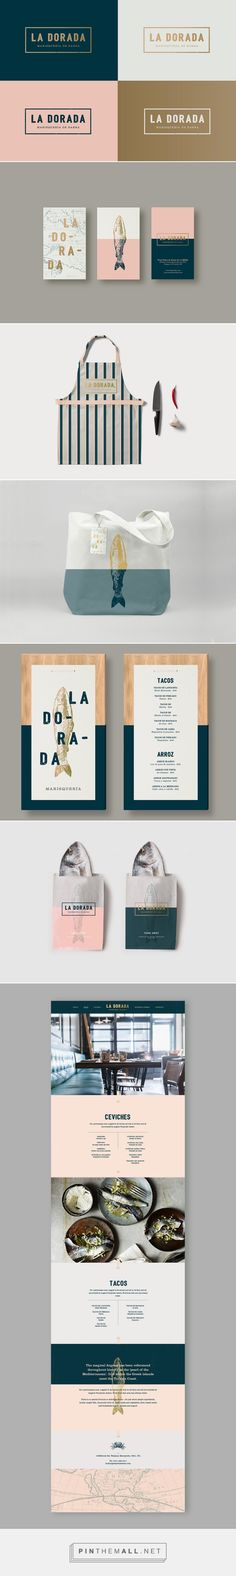 Food Inspiration - La Dorada packaging branding on Behance curated by Packaging Diva PD. Who's up for fish for lunch : ) PD. - a grouped images picture - business branding Business Branding, Branding And Packaging, Food Branding, Restaurant Branding, Packaging Design, Restaurant Restaurant, Branding Ideas, Identity Branding, Corporate Branding